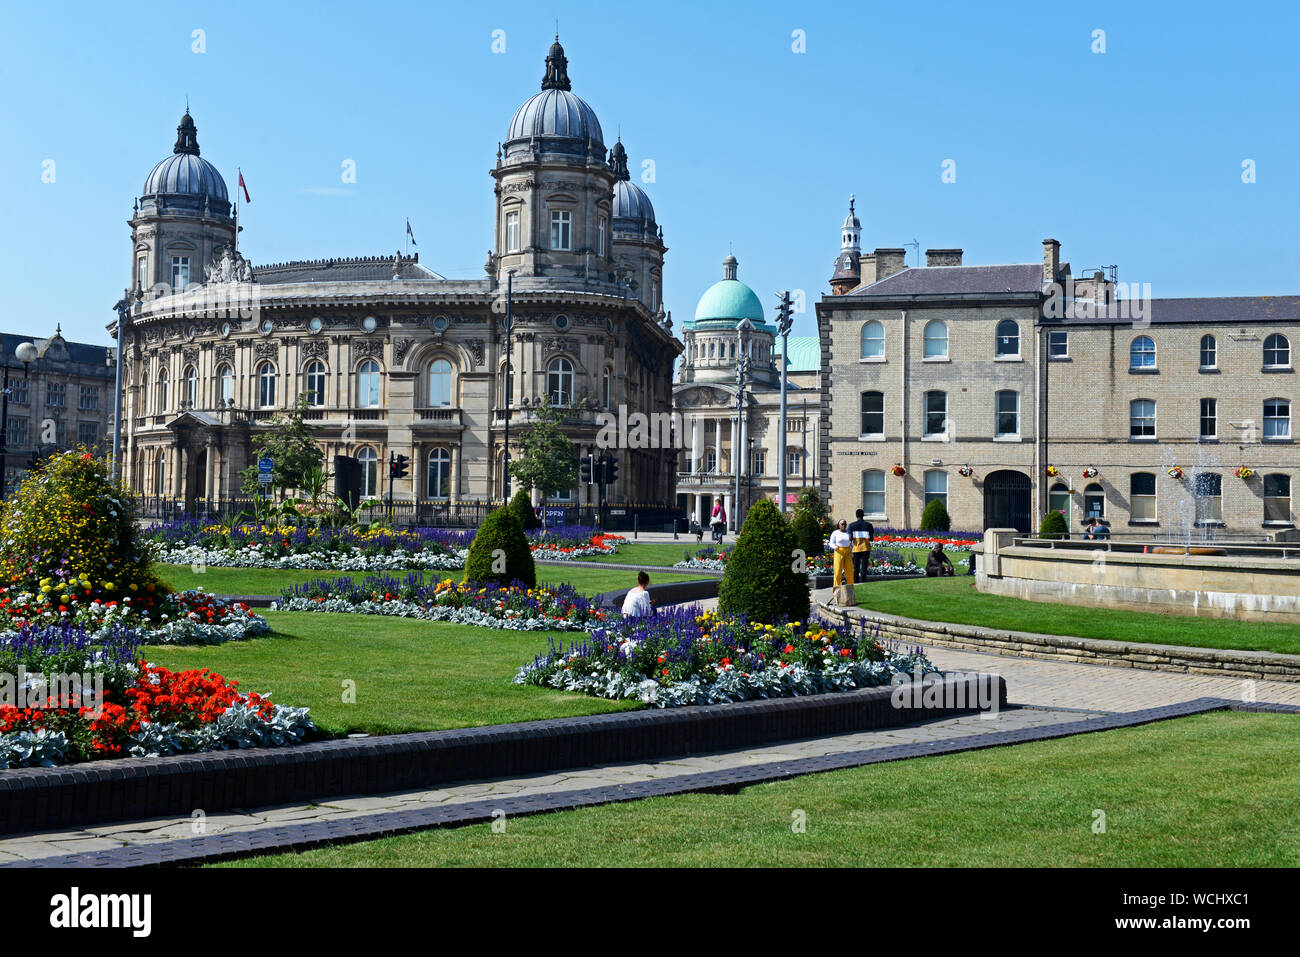 Queen's Gardens, looking towards the Town Hall and Maritime MUseum, Hull, East Yorkshire, England UK Stock Photo